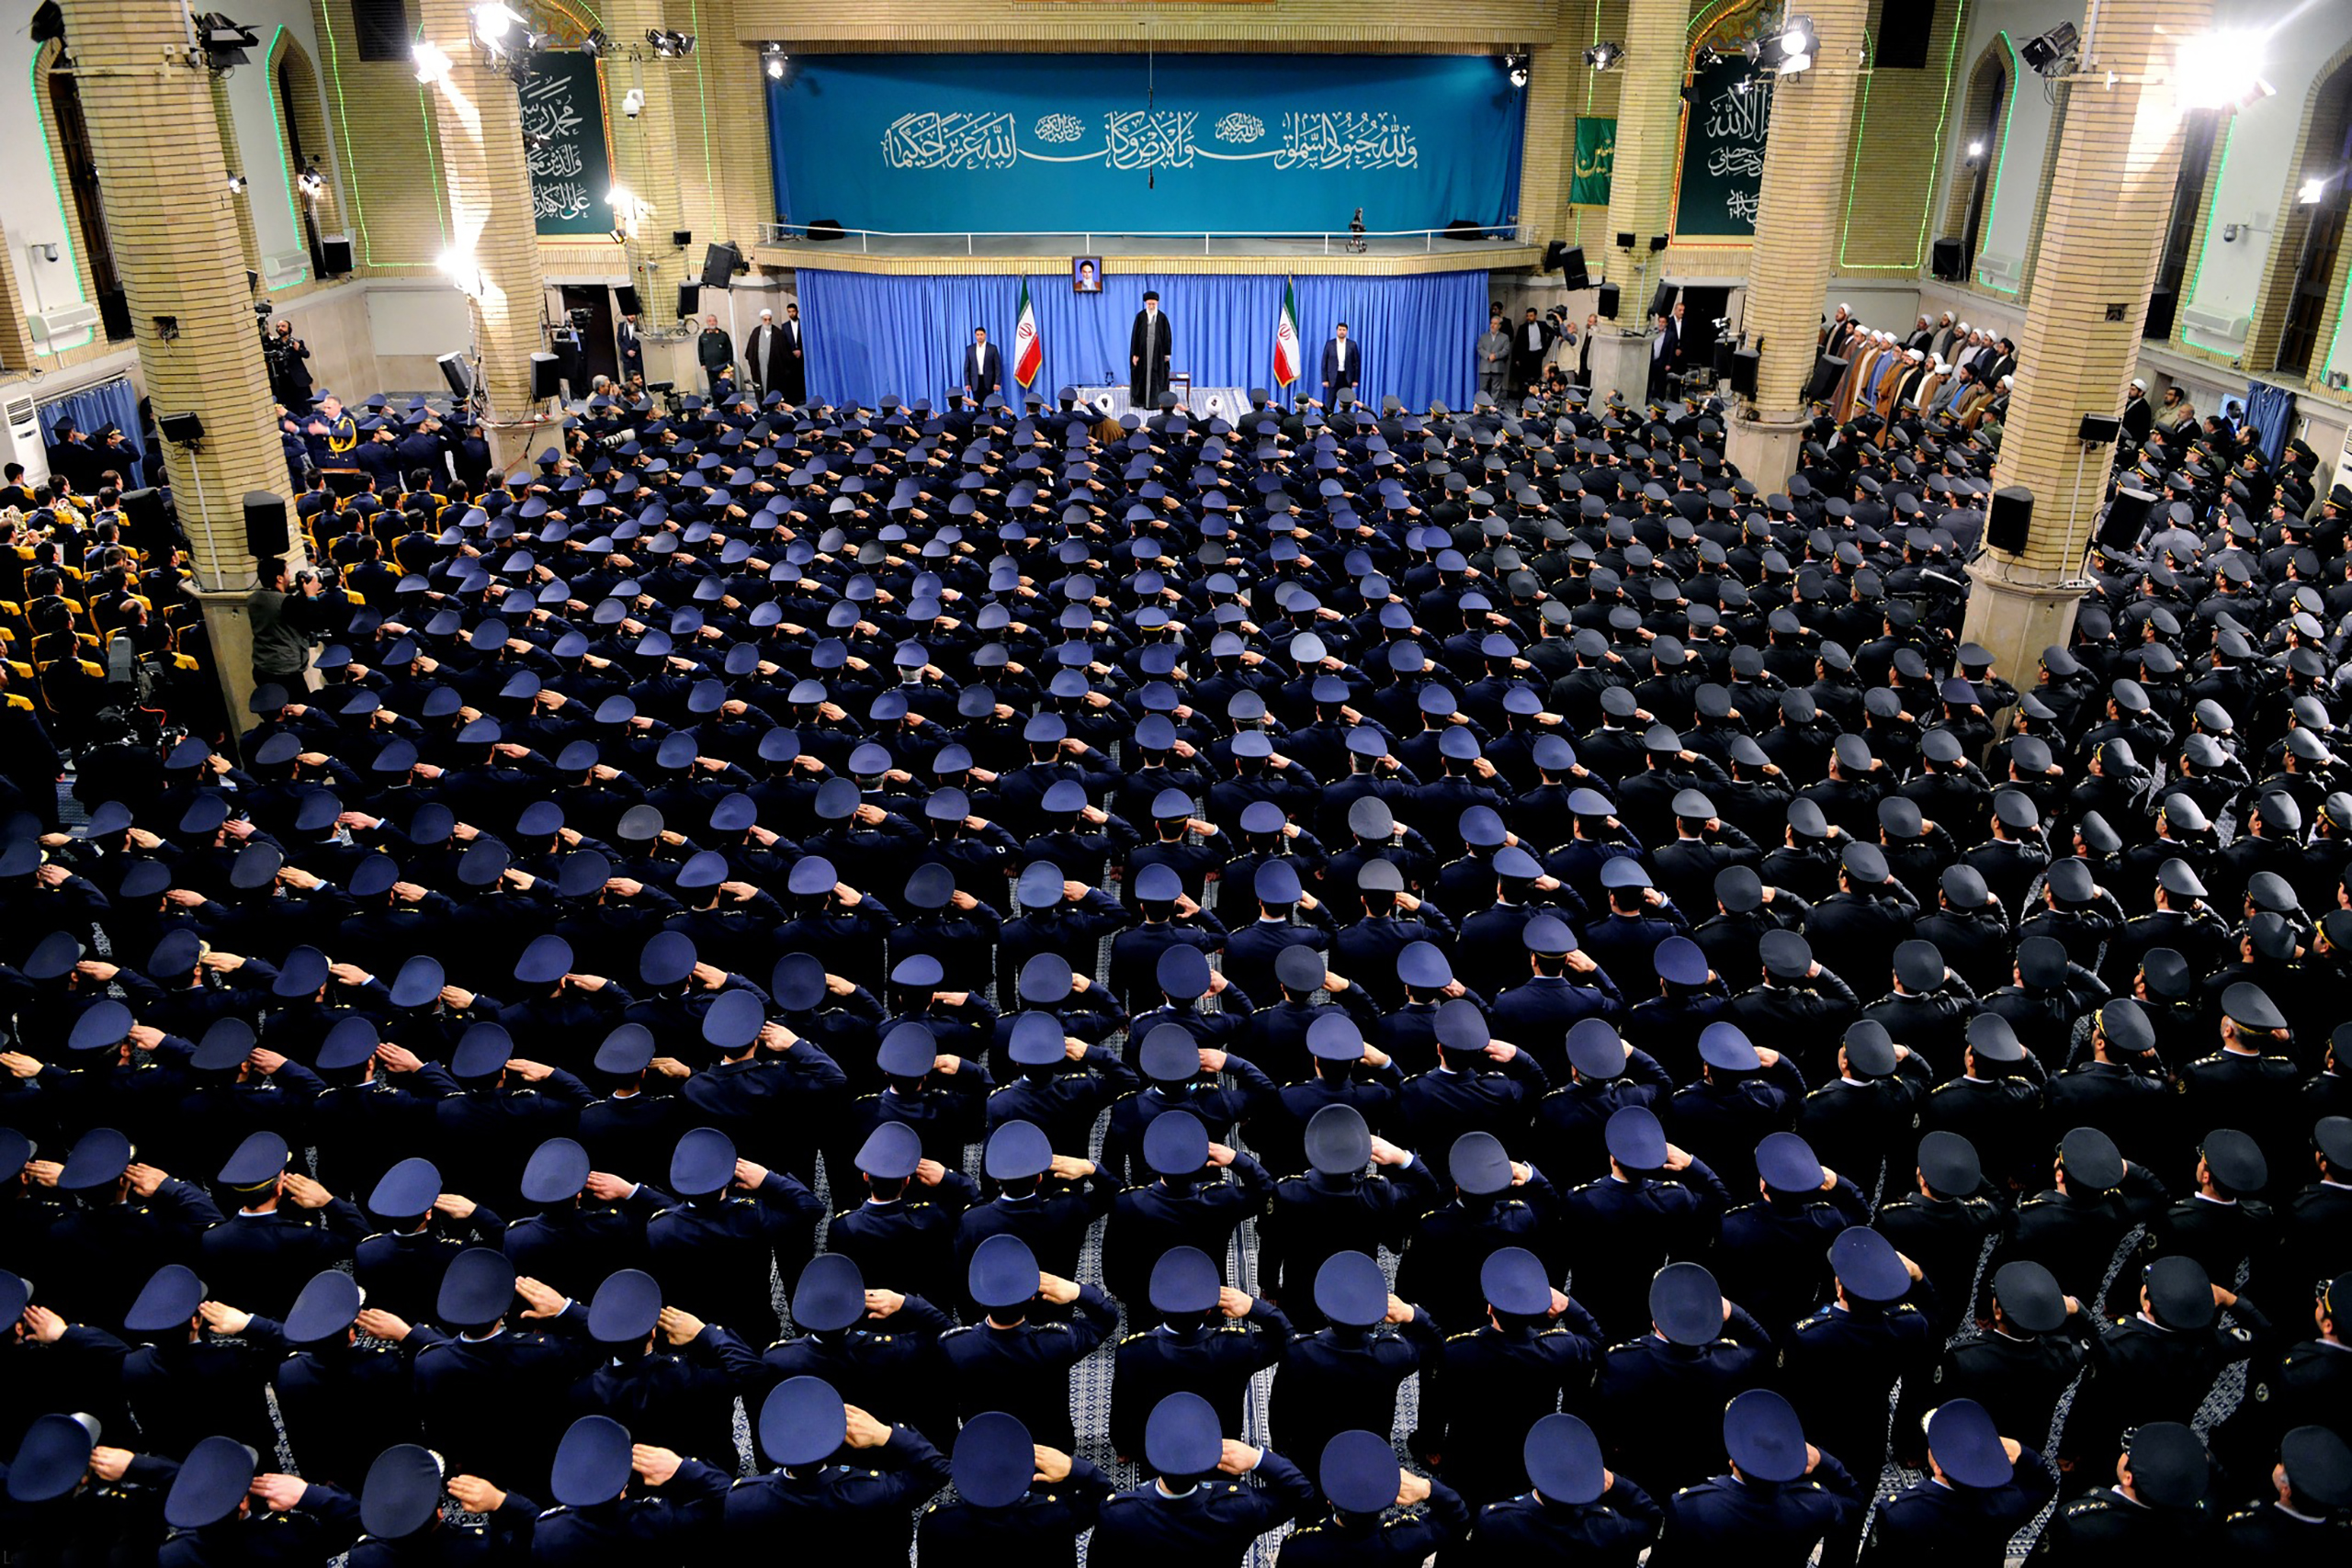 """In a speech to the military, Ayatullah Khamenei said President Trump had shown America's """"real face"""""""